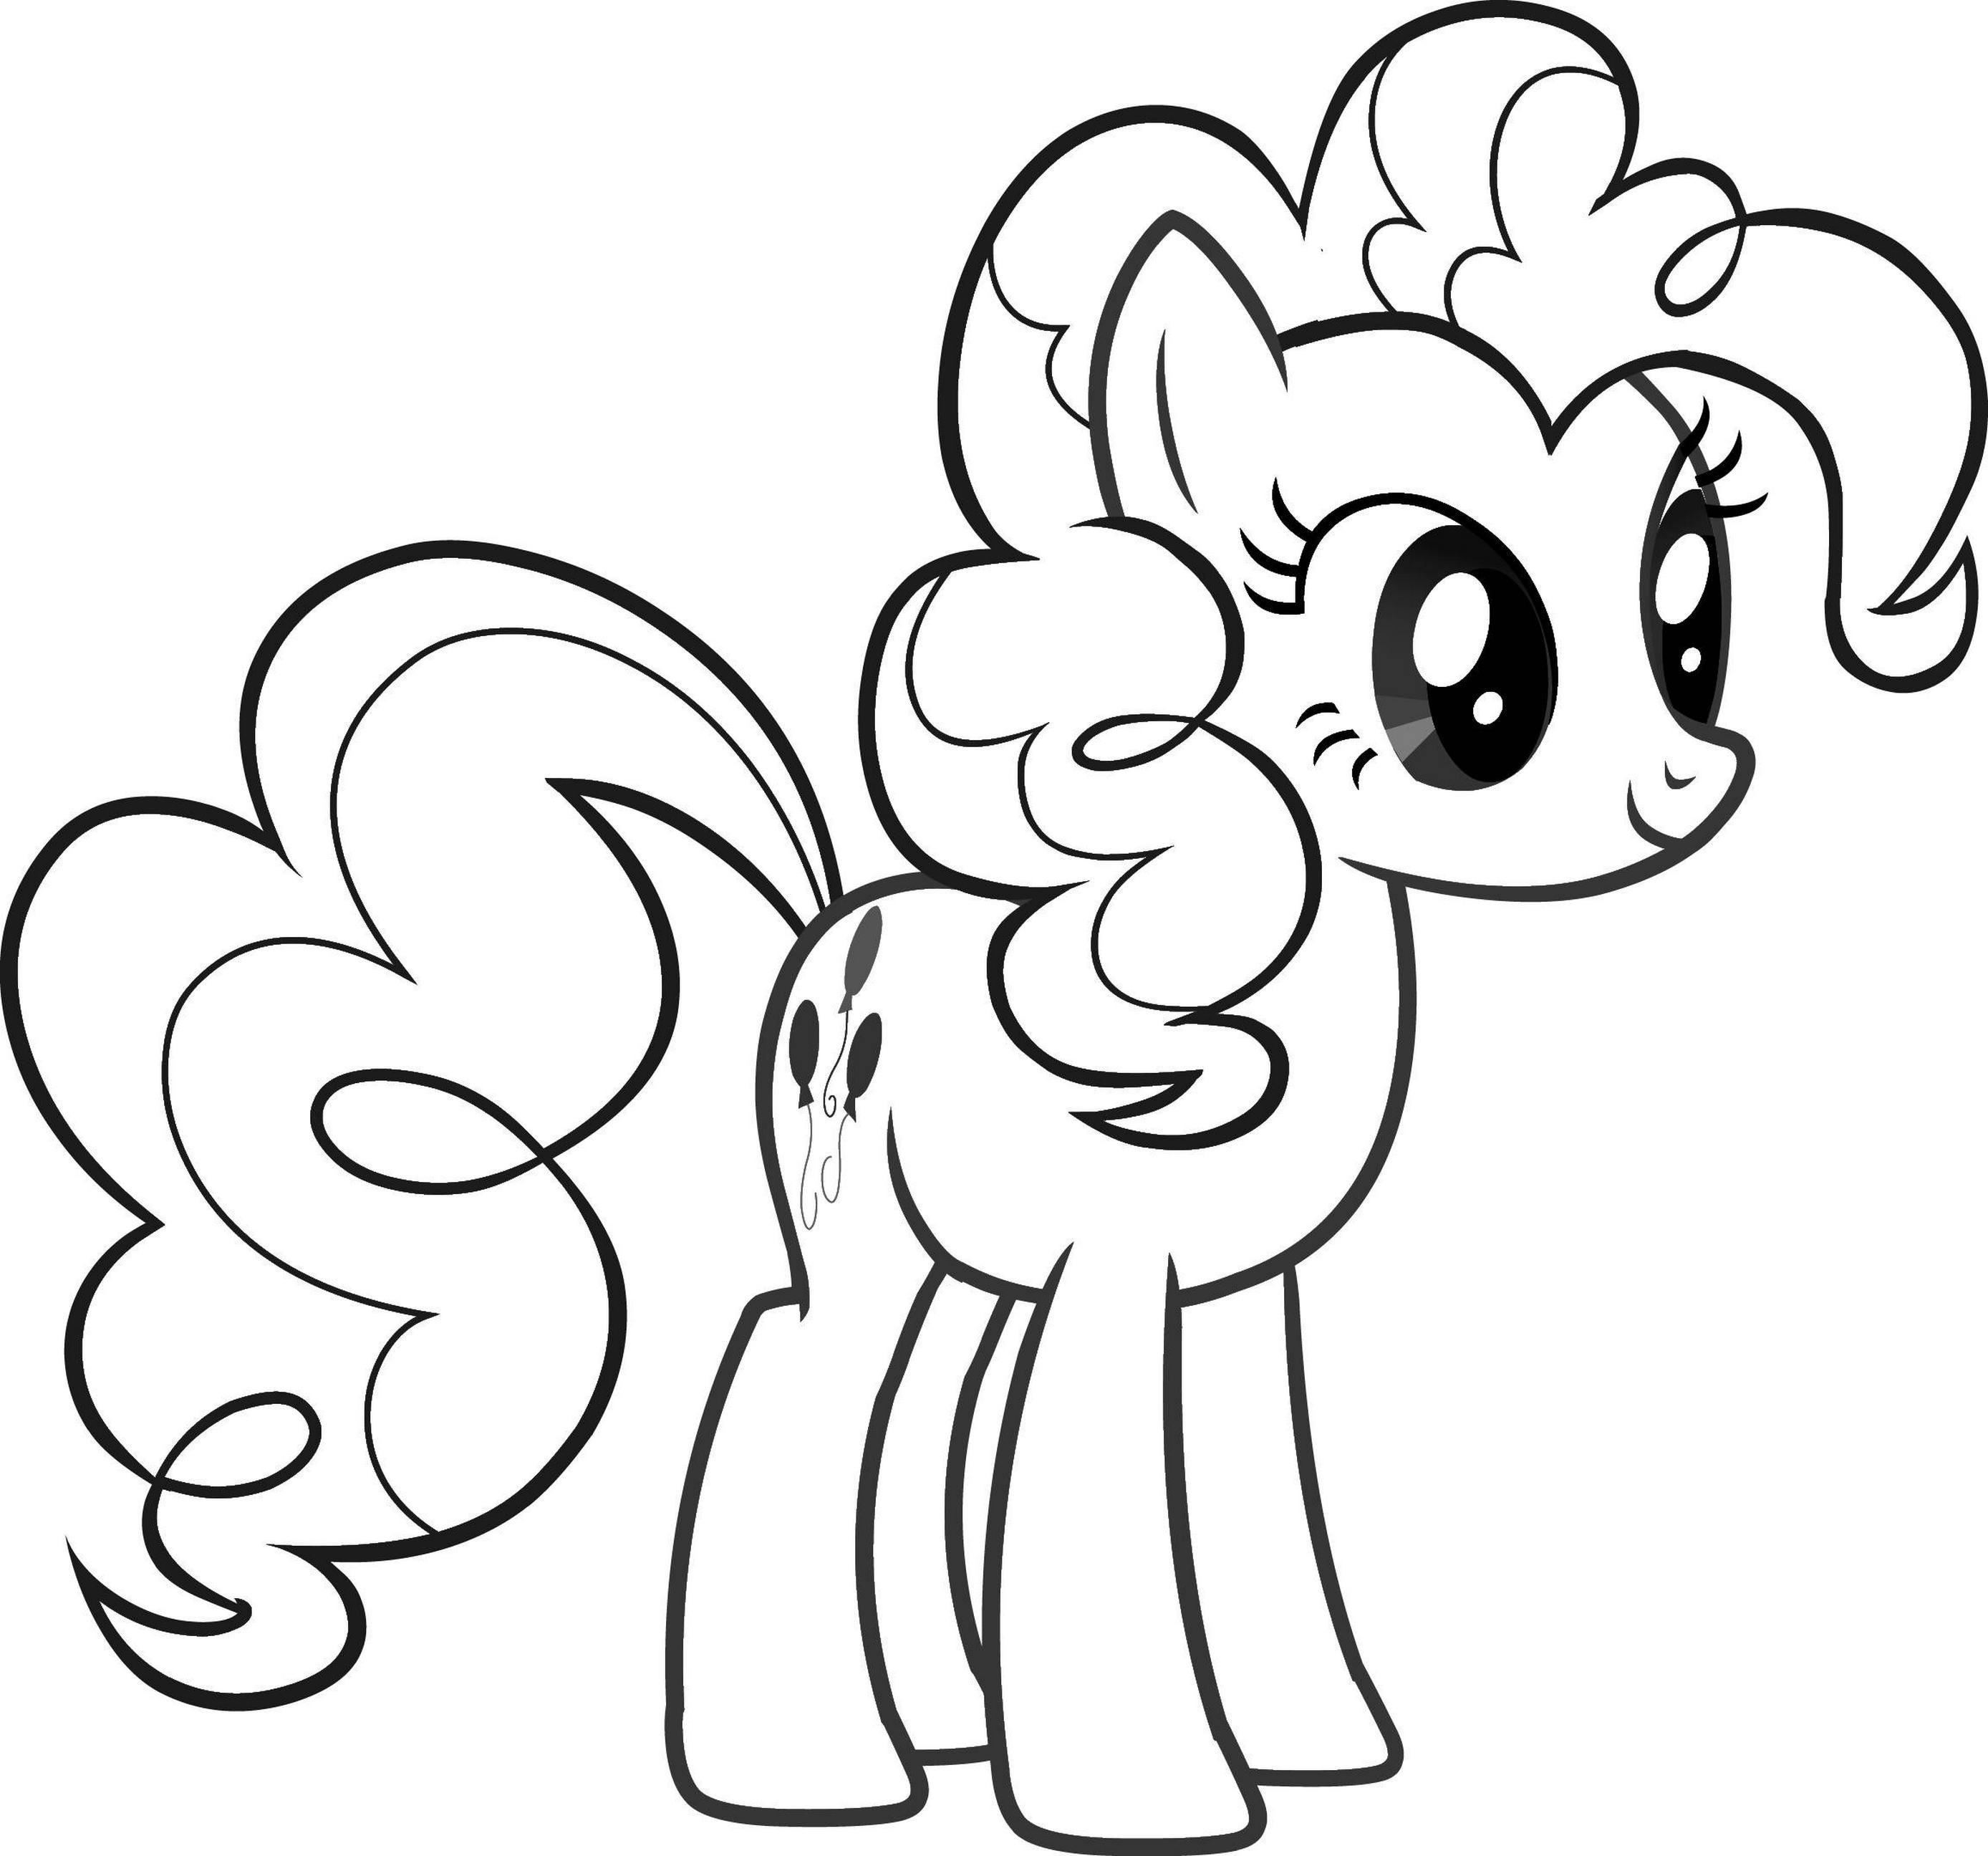 my little pony coloring pages - HD1200×1120